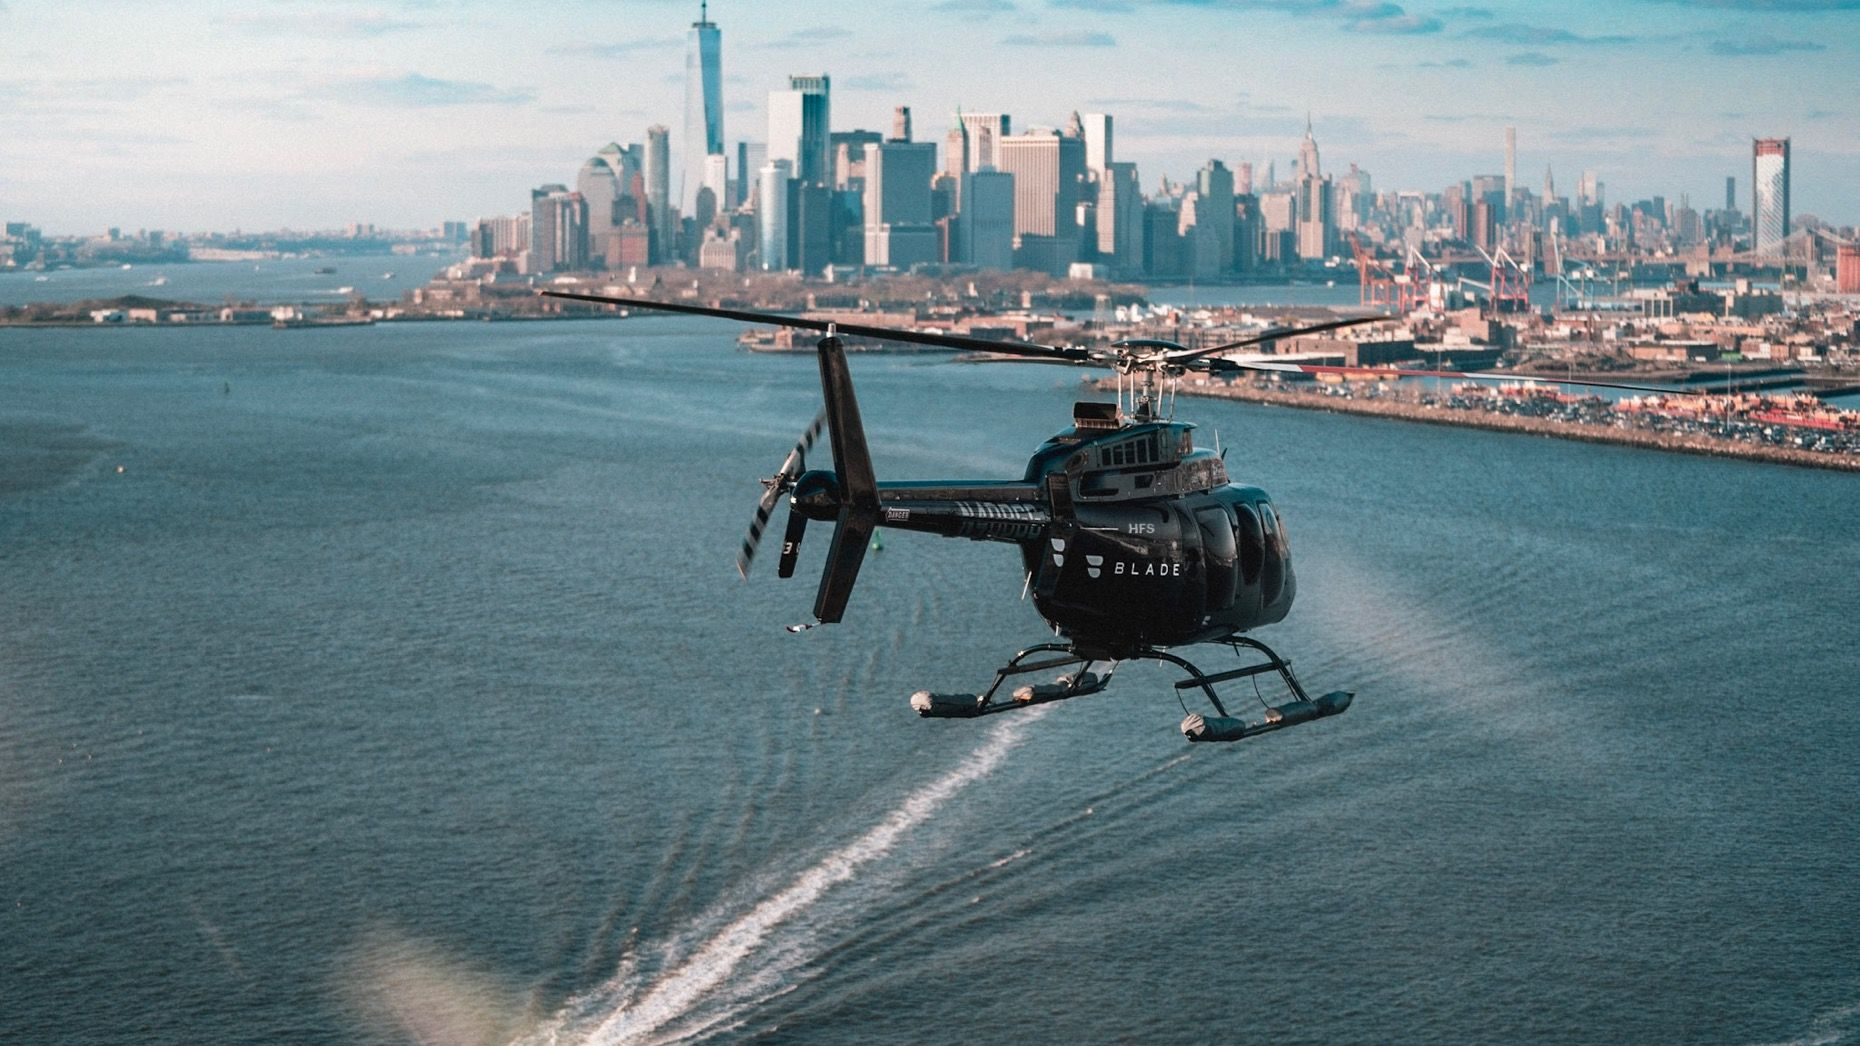 A Blade helicopter over New York Harbor. Image: Blade